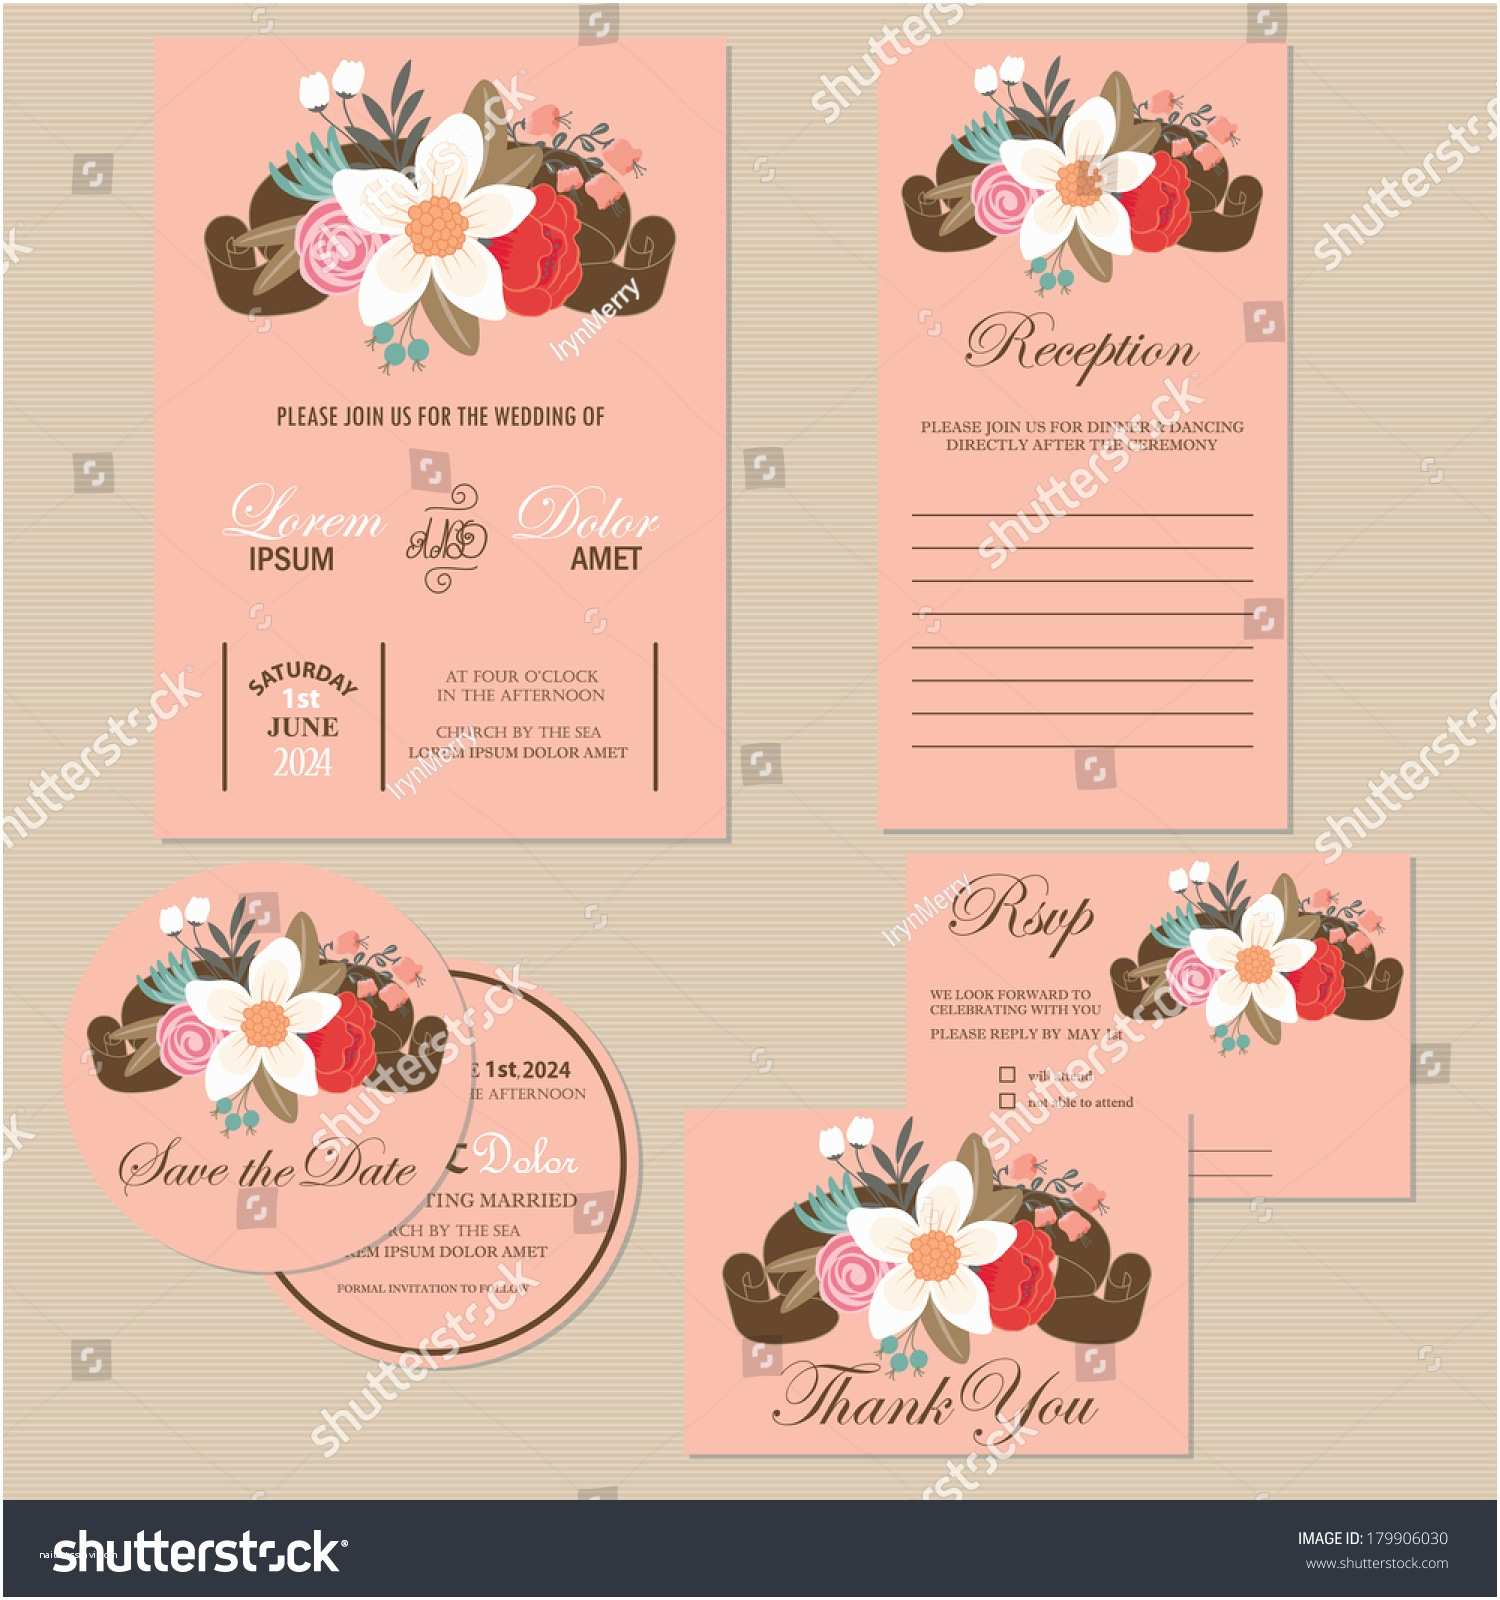 Wedding Invitations with Rsvp and Reception Cards Set Wedding Invitation Cards Invitation Thank You